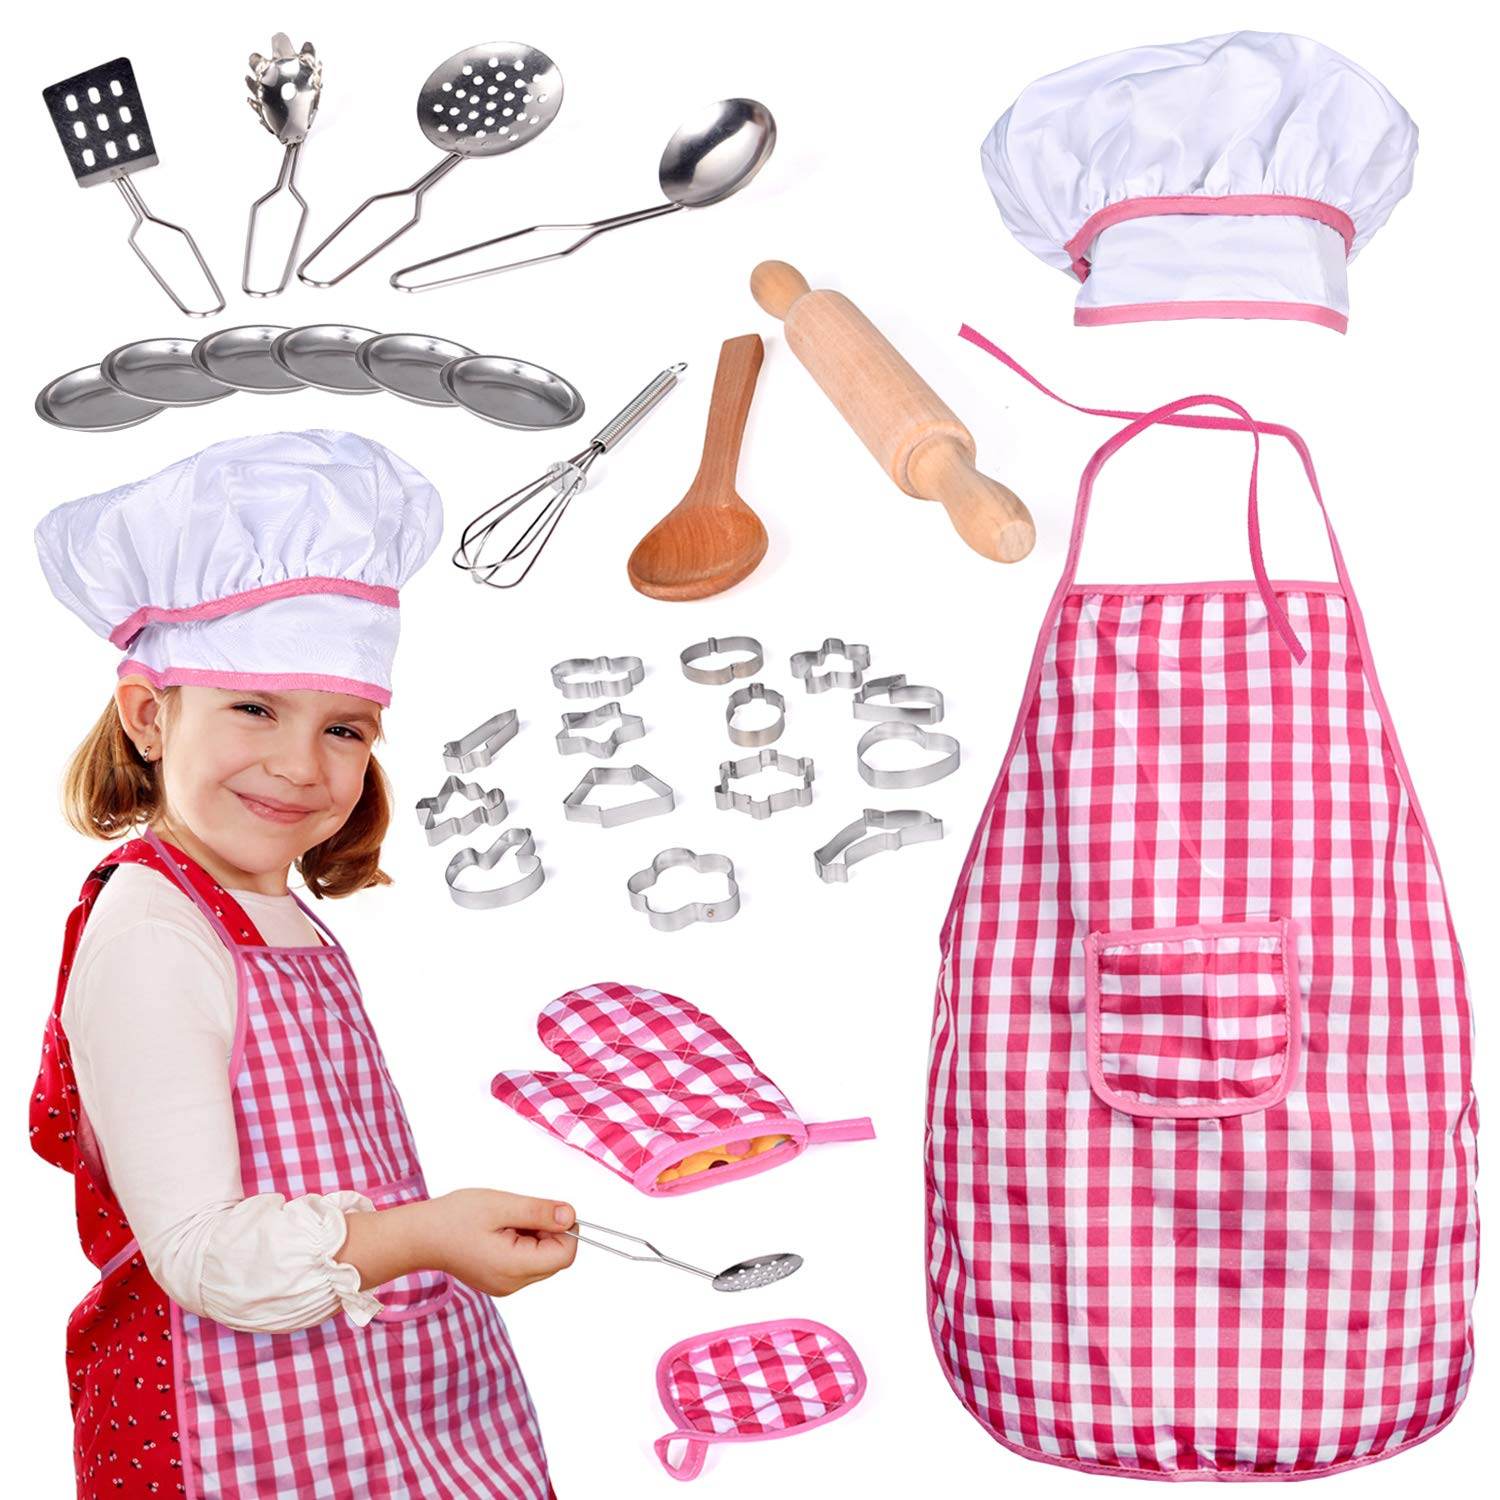 Dress Up Pretend Play Images On: 32PCs Chef Dress Up Clothes Little Girls, Kitchen Play Set